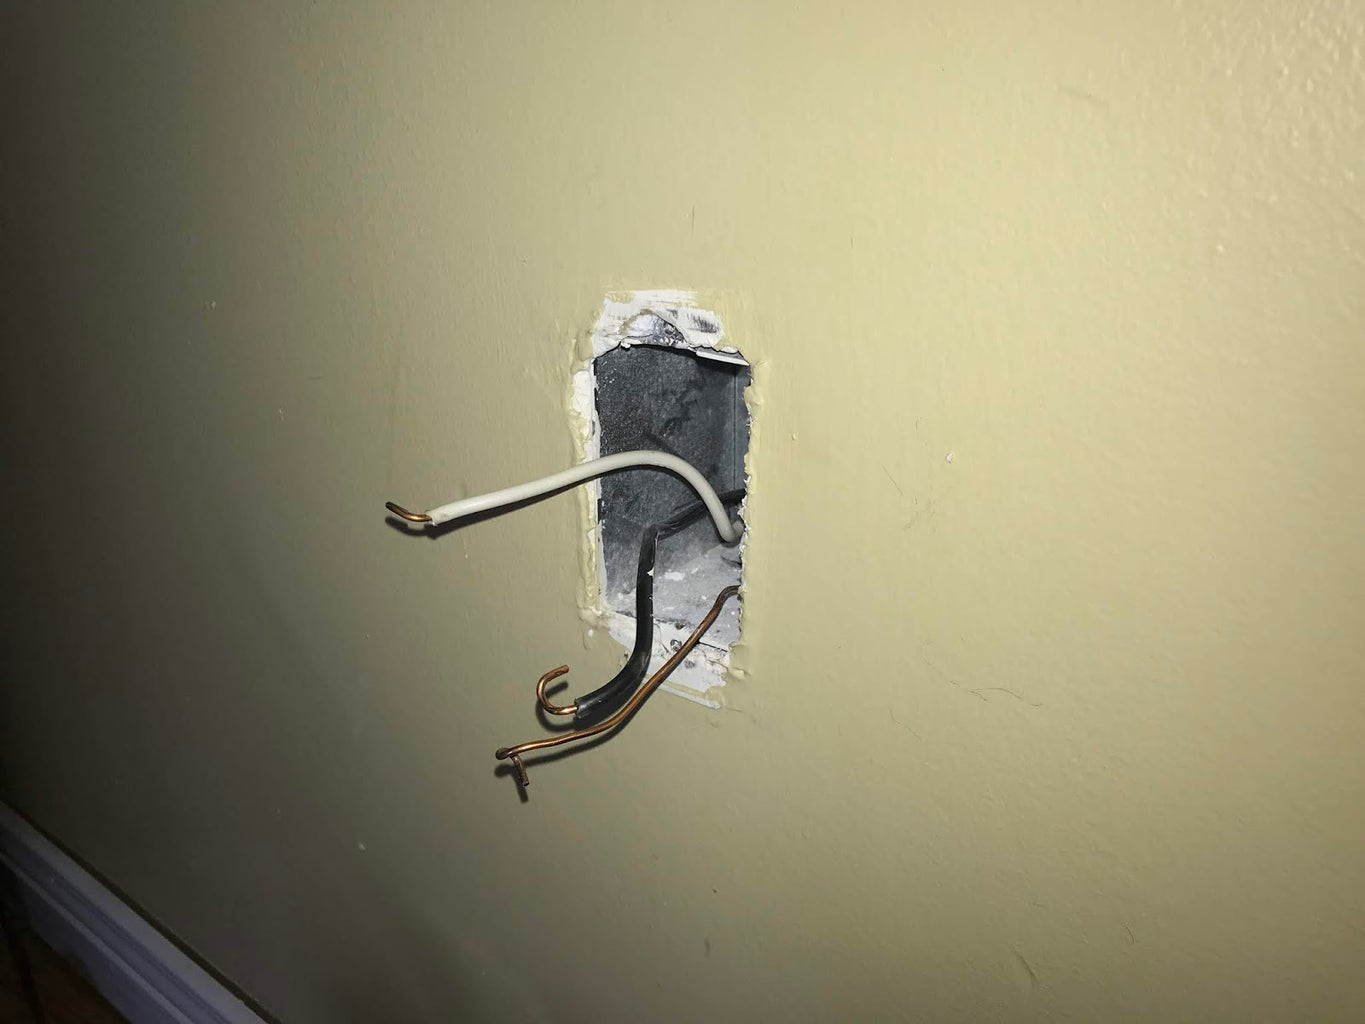 Removing the Old Outlet